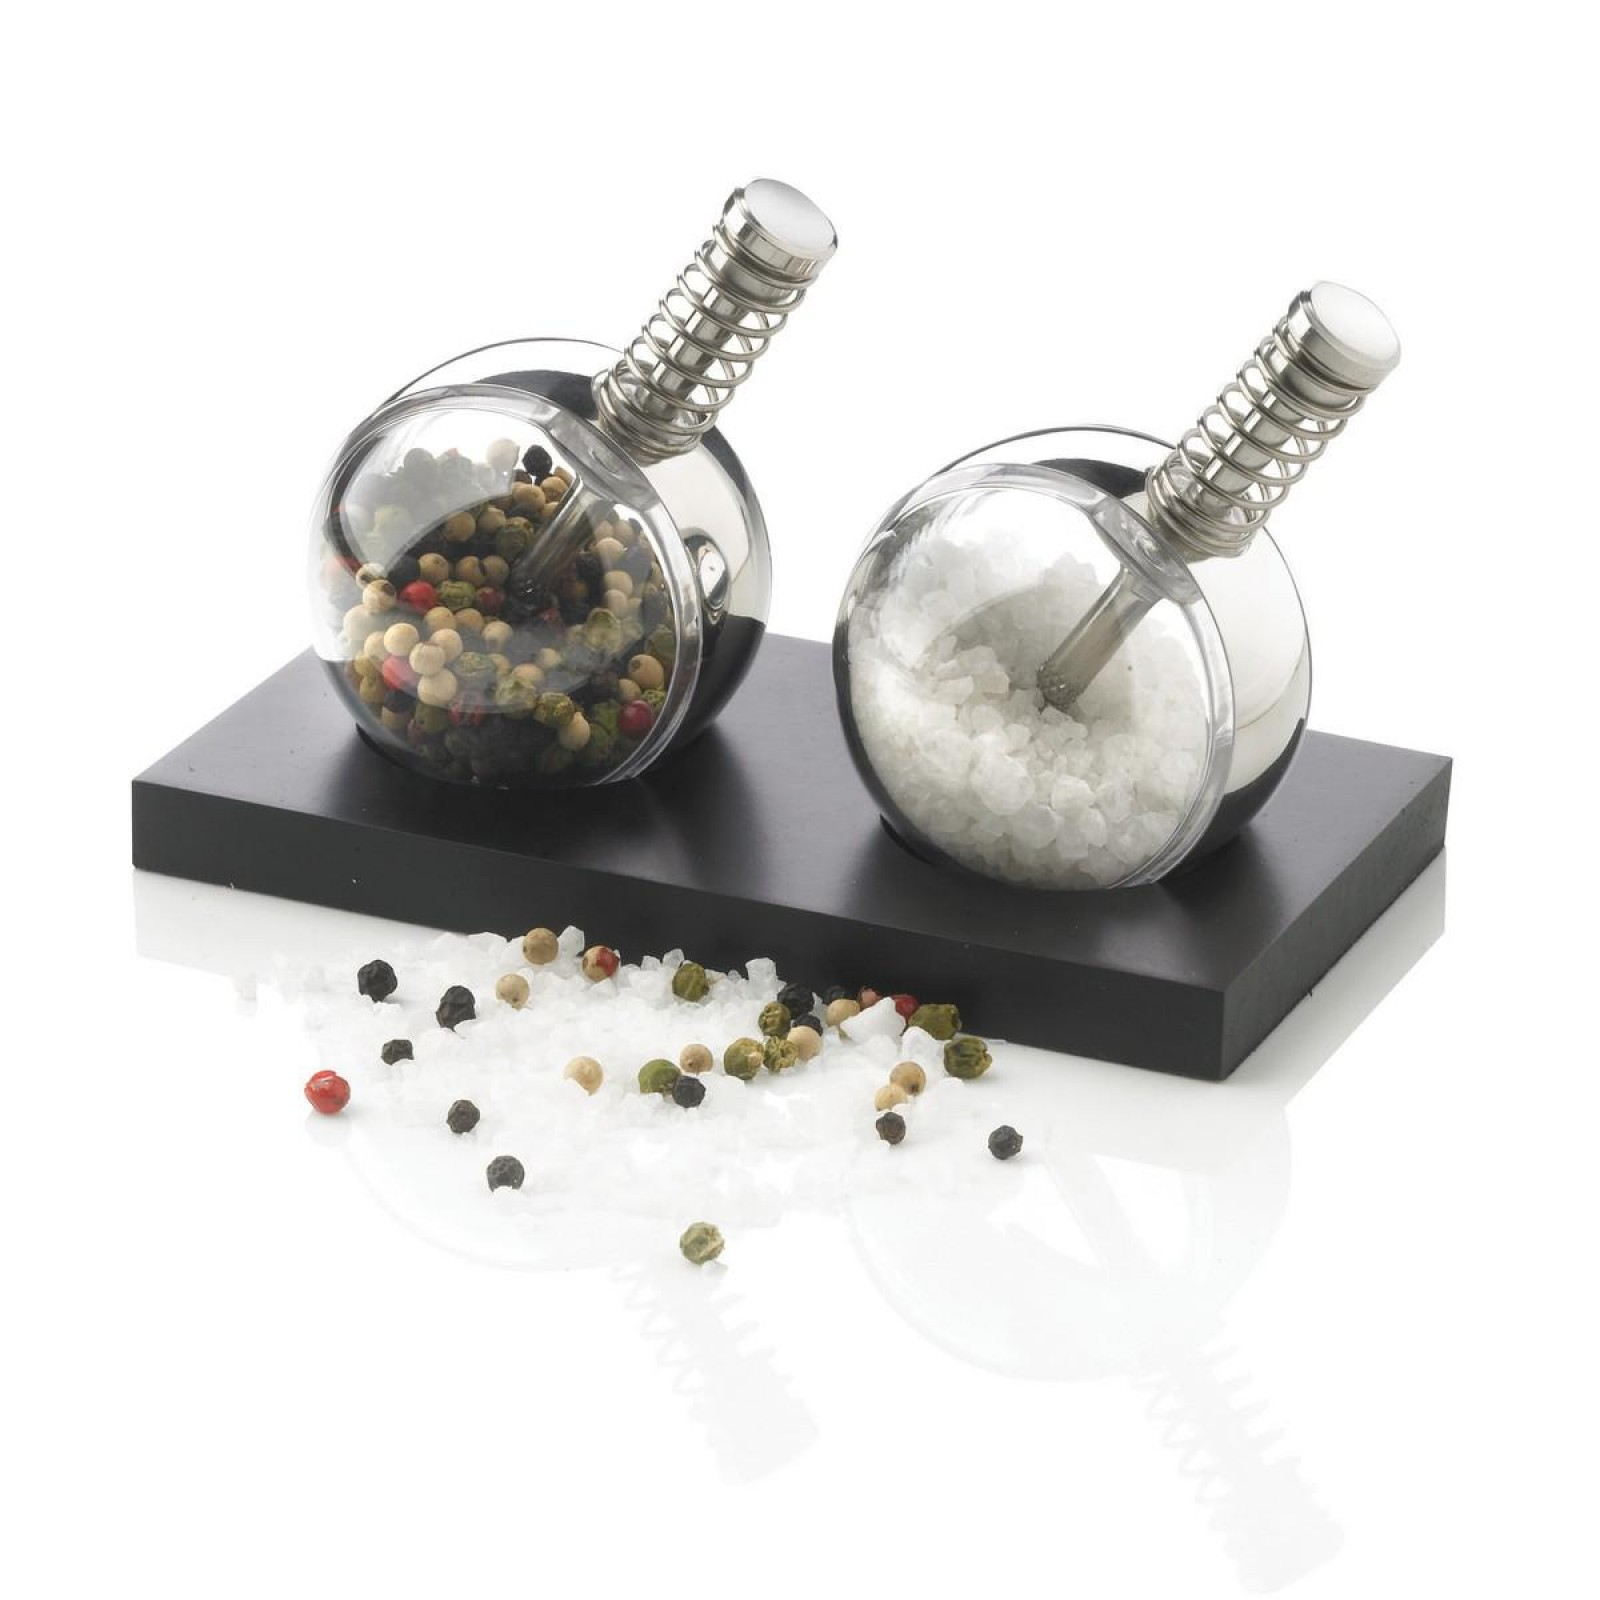 Planet Salt & Pepper Mill Set - XD Design